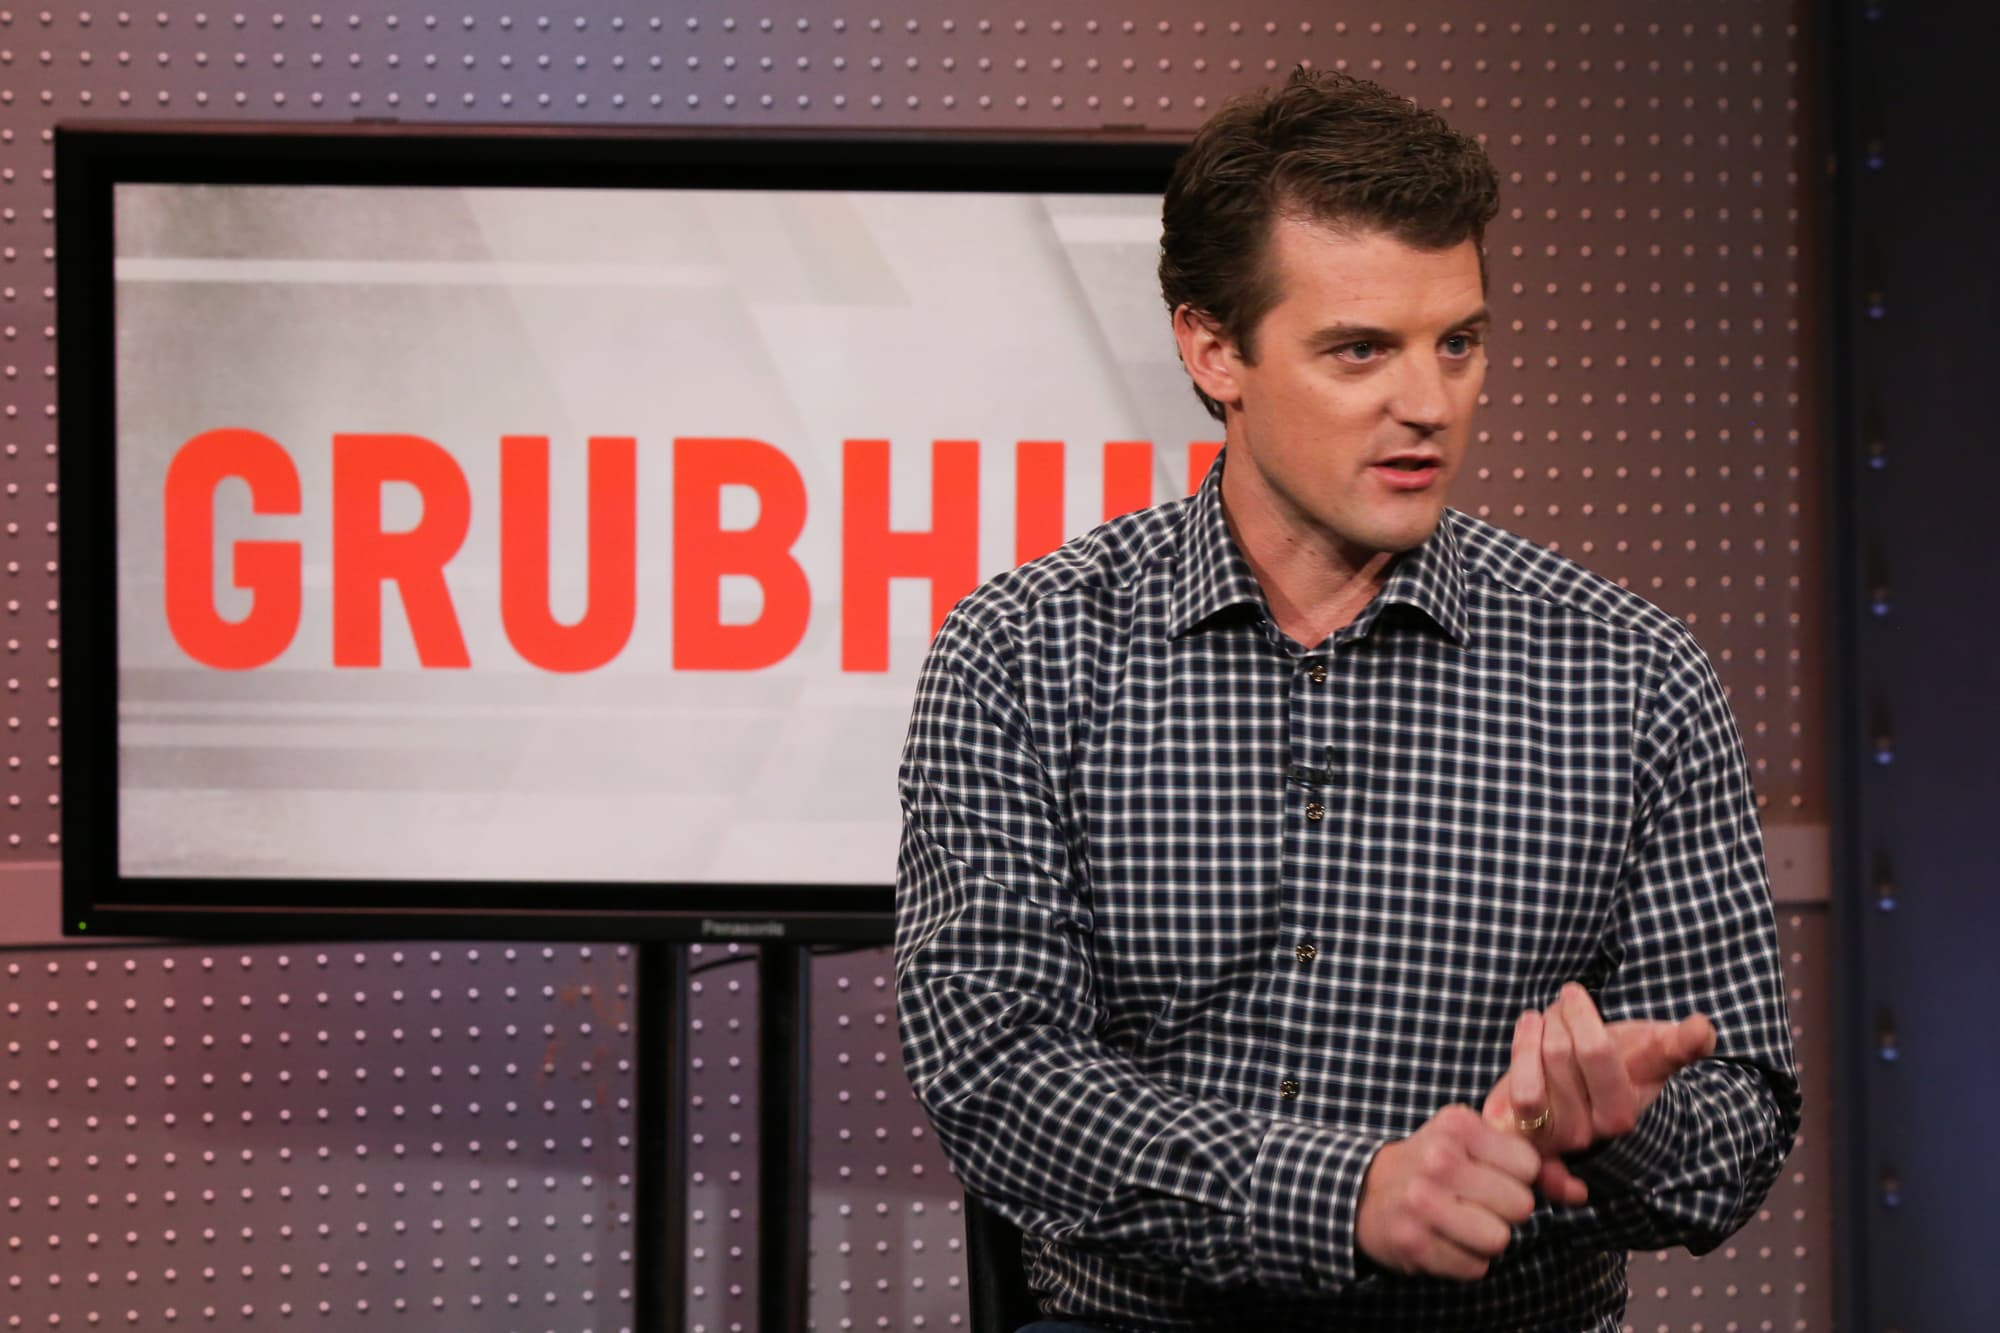 GrubHub sinks as it loses share to UberEats and DoorDash